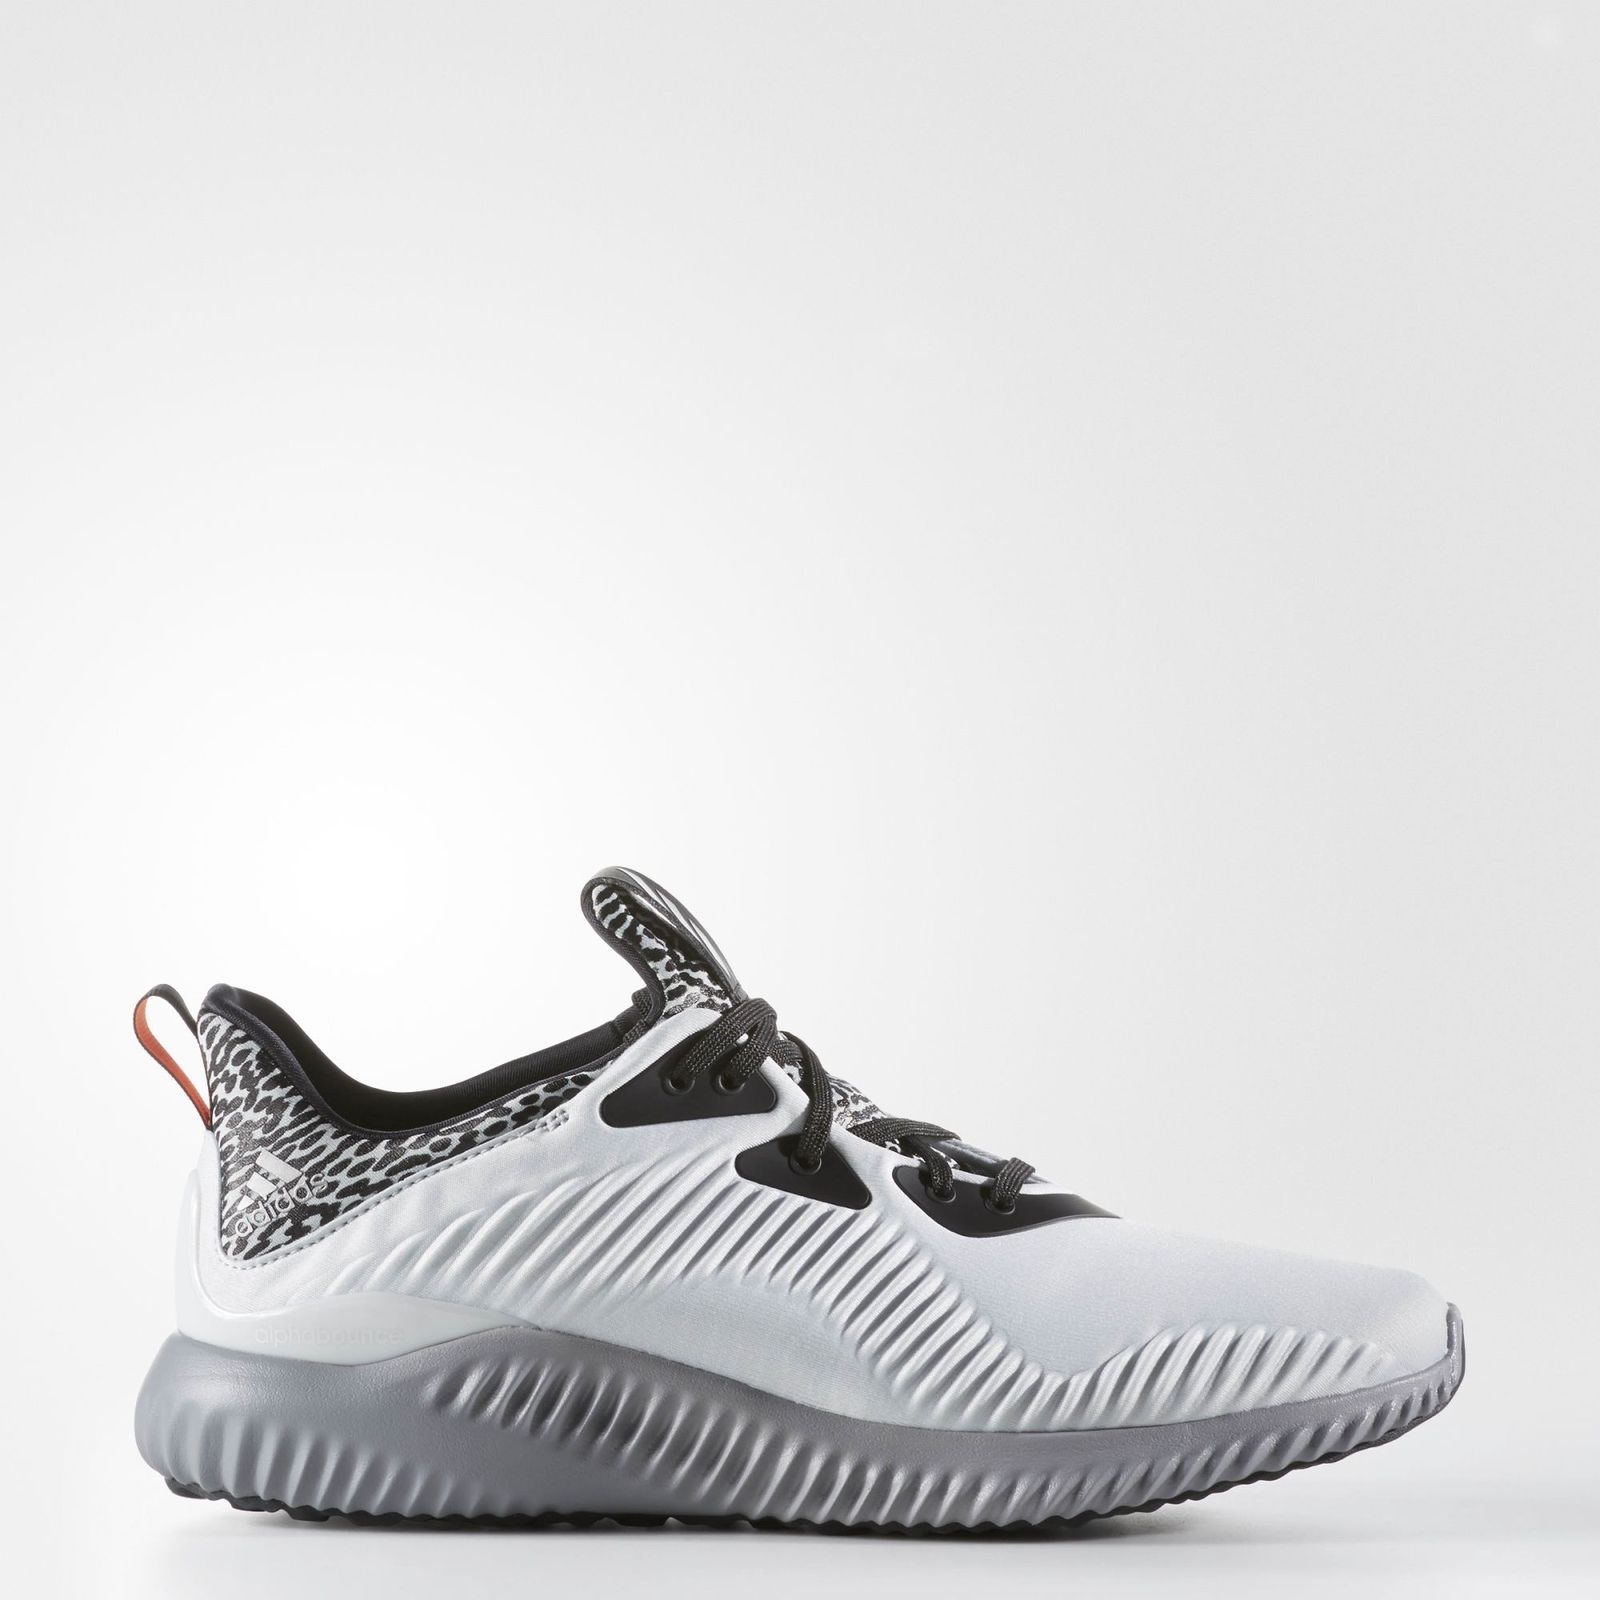 $49.99, Was $100, 50% Off! adidas alphabounce Shoes Men's Grey dealfomo